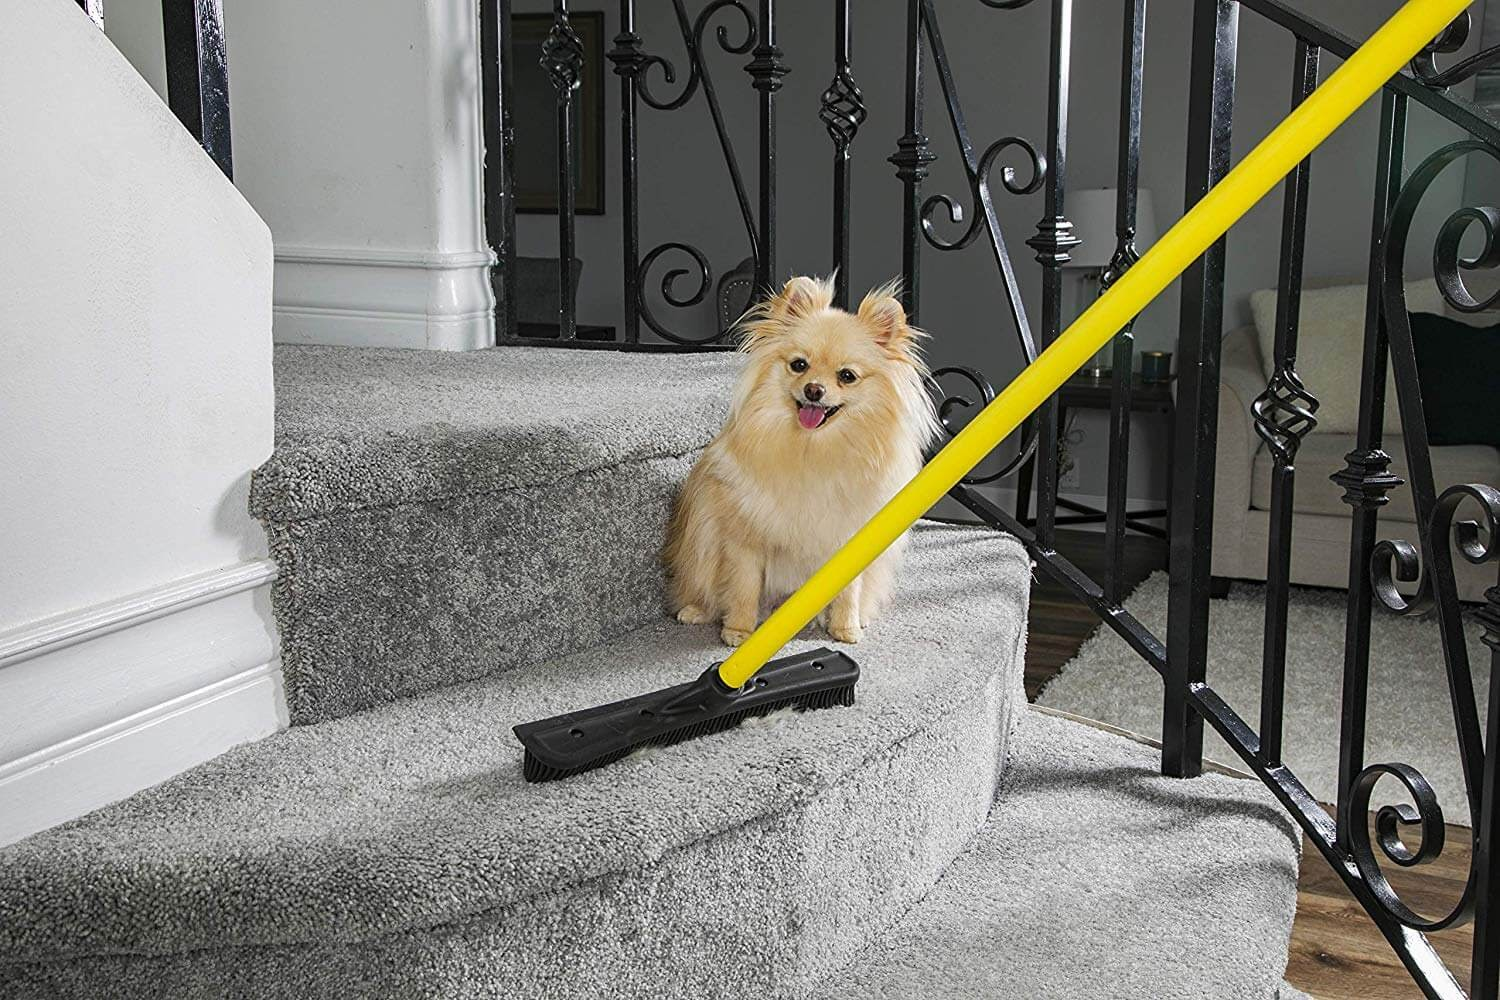 Golden Pomeranian dog sitting on staircase being a rubber broom with a yellow handle.